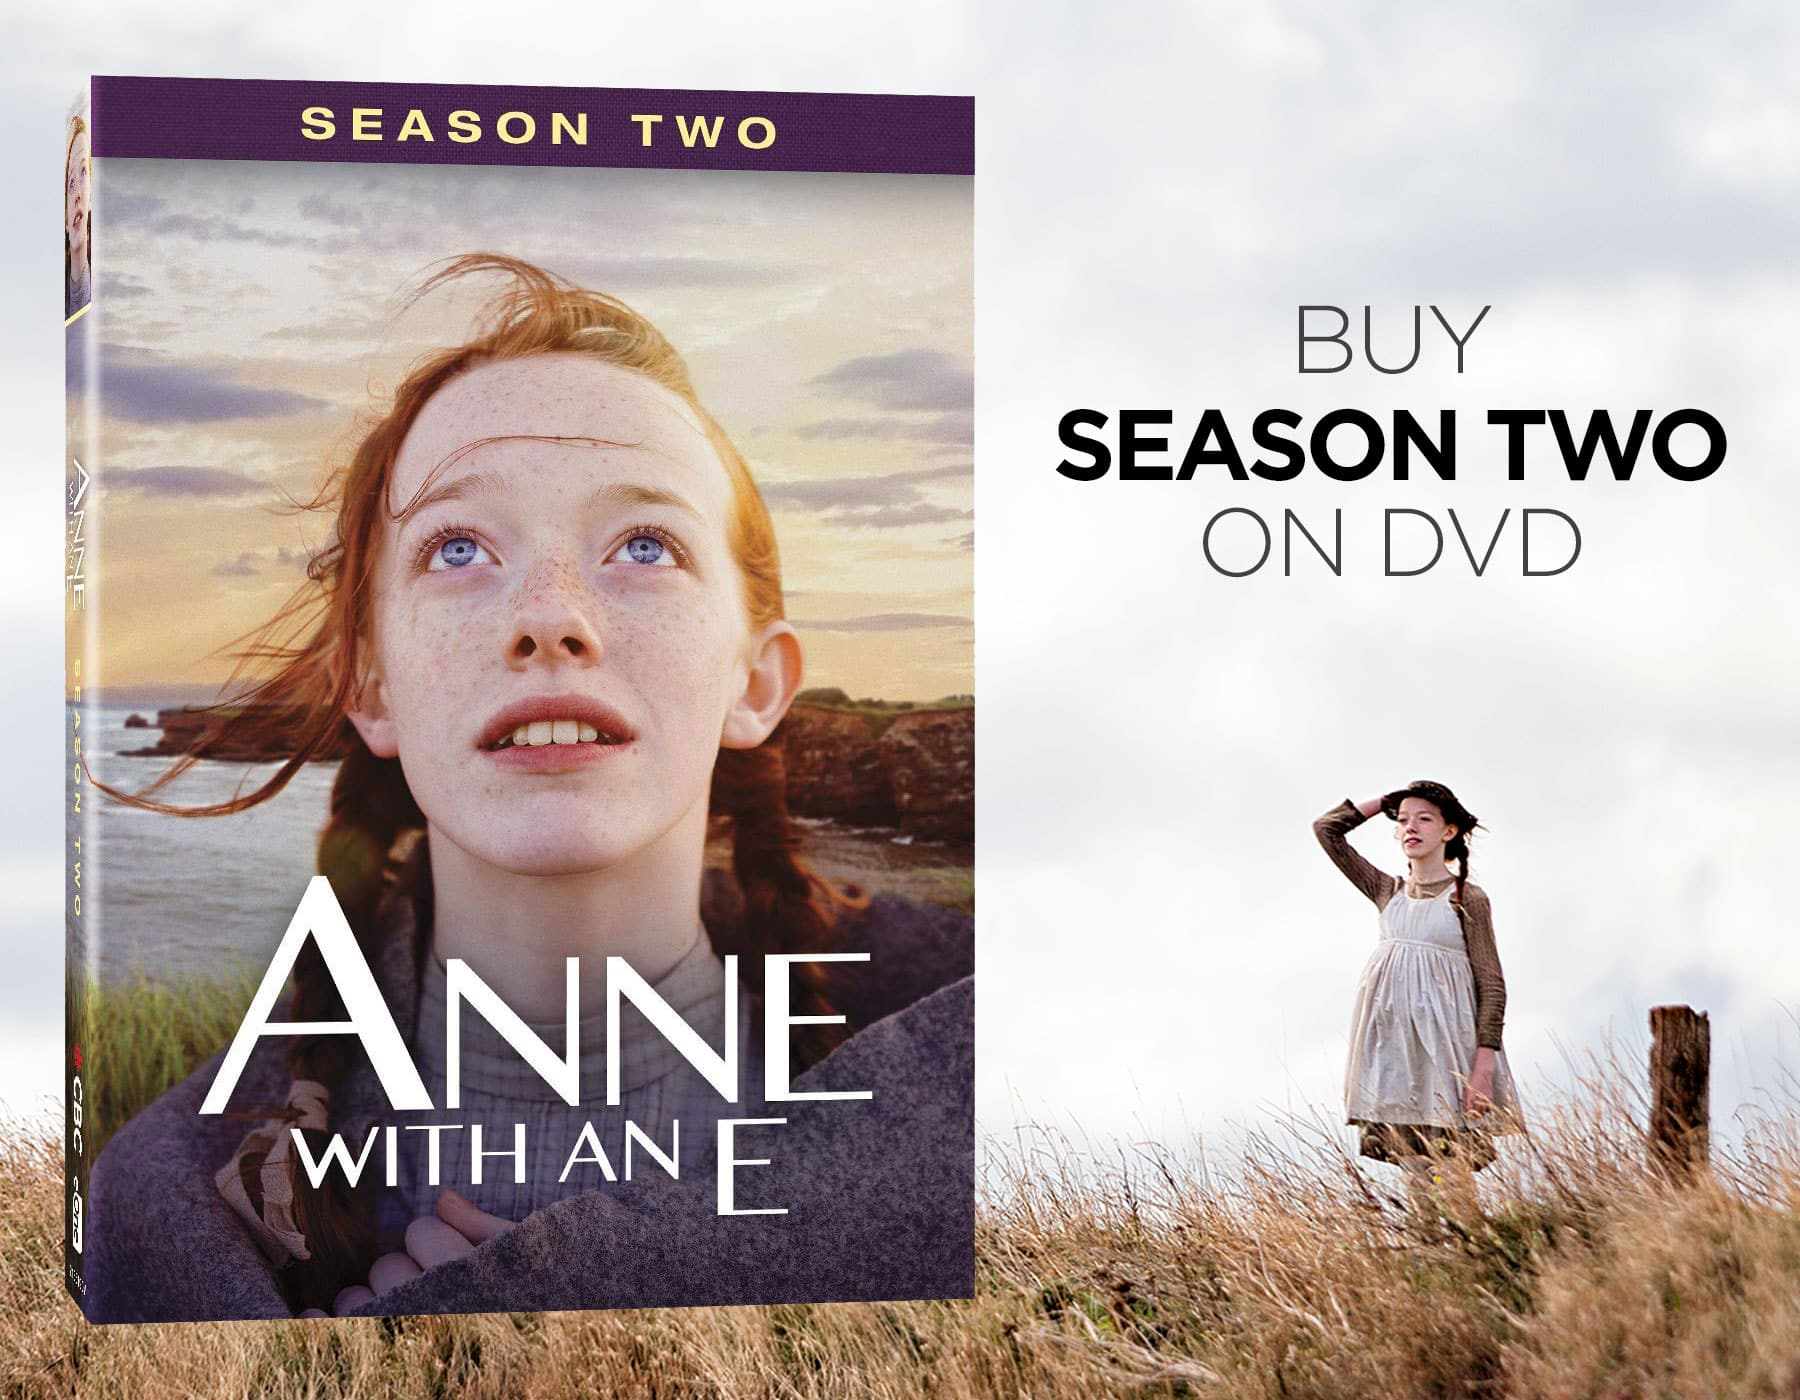 Buy Season 2 on DVD